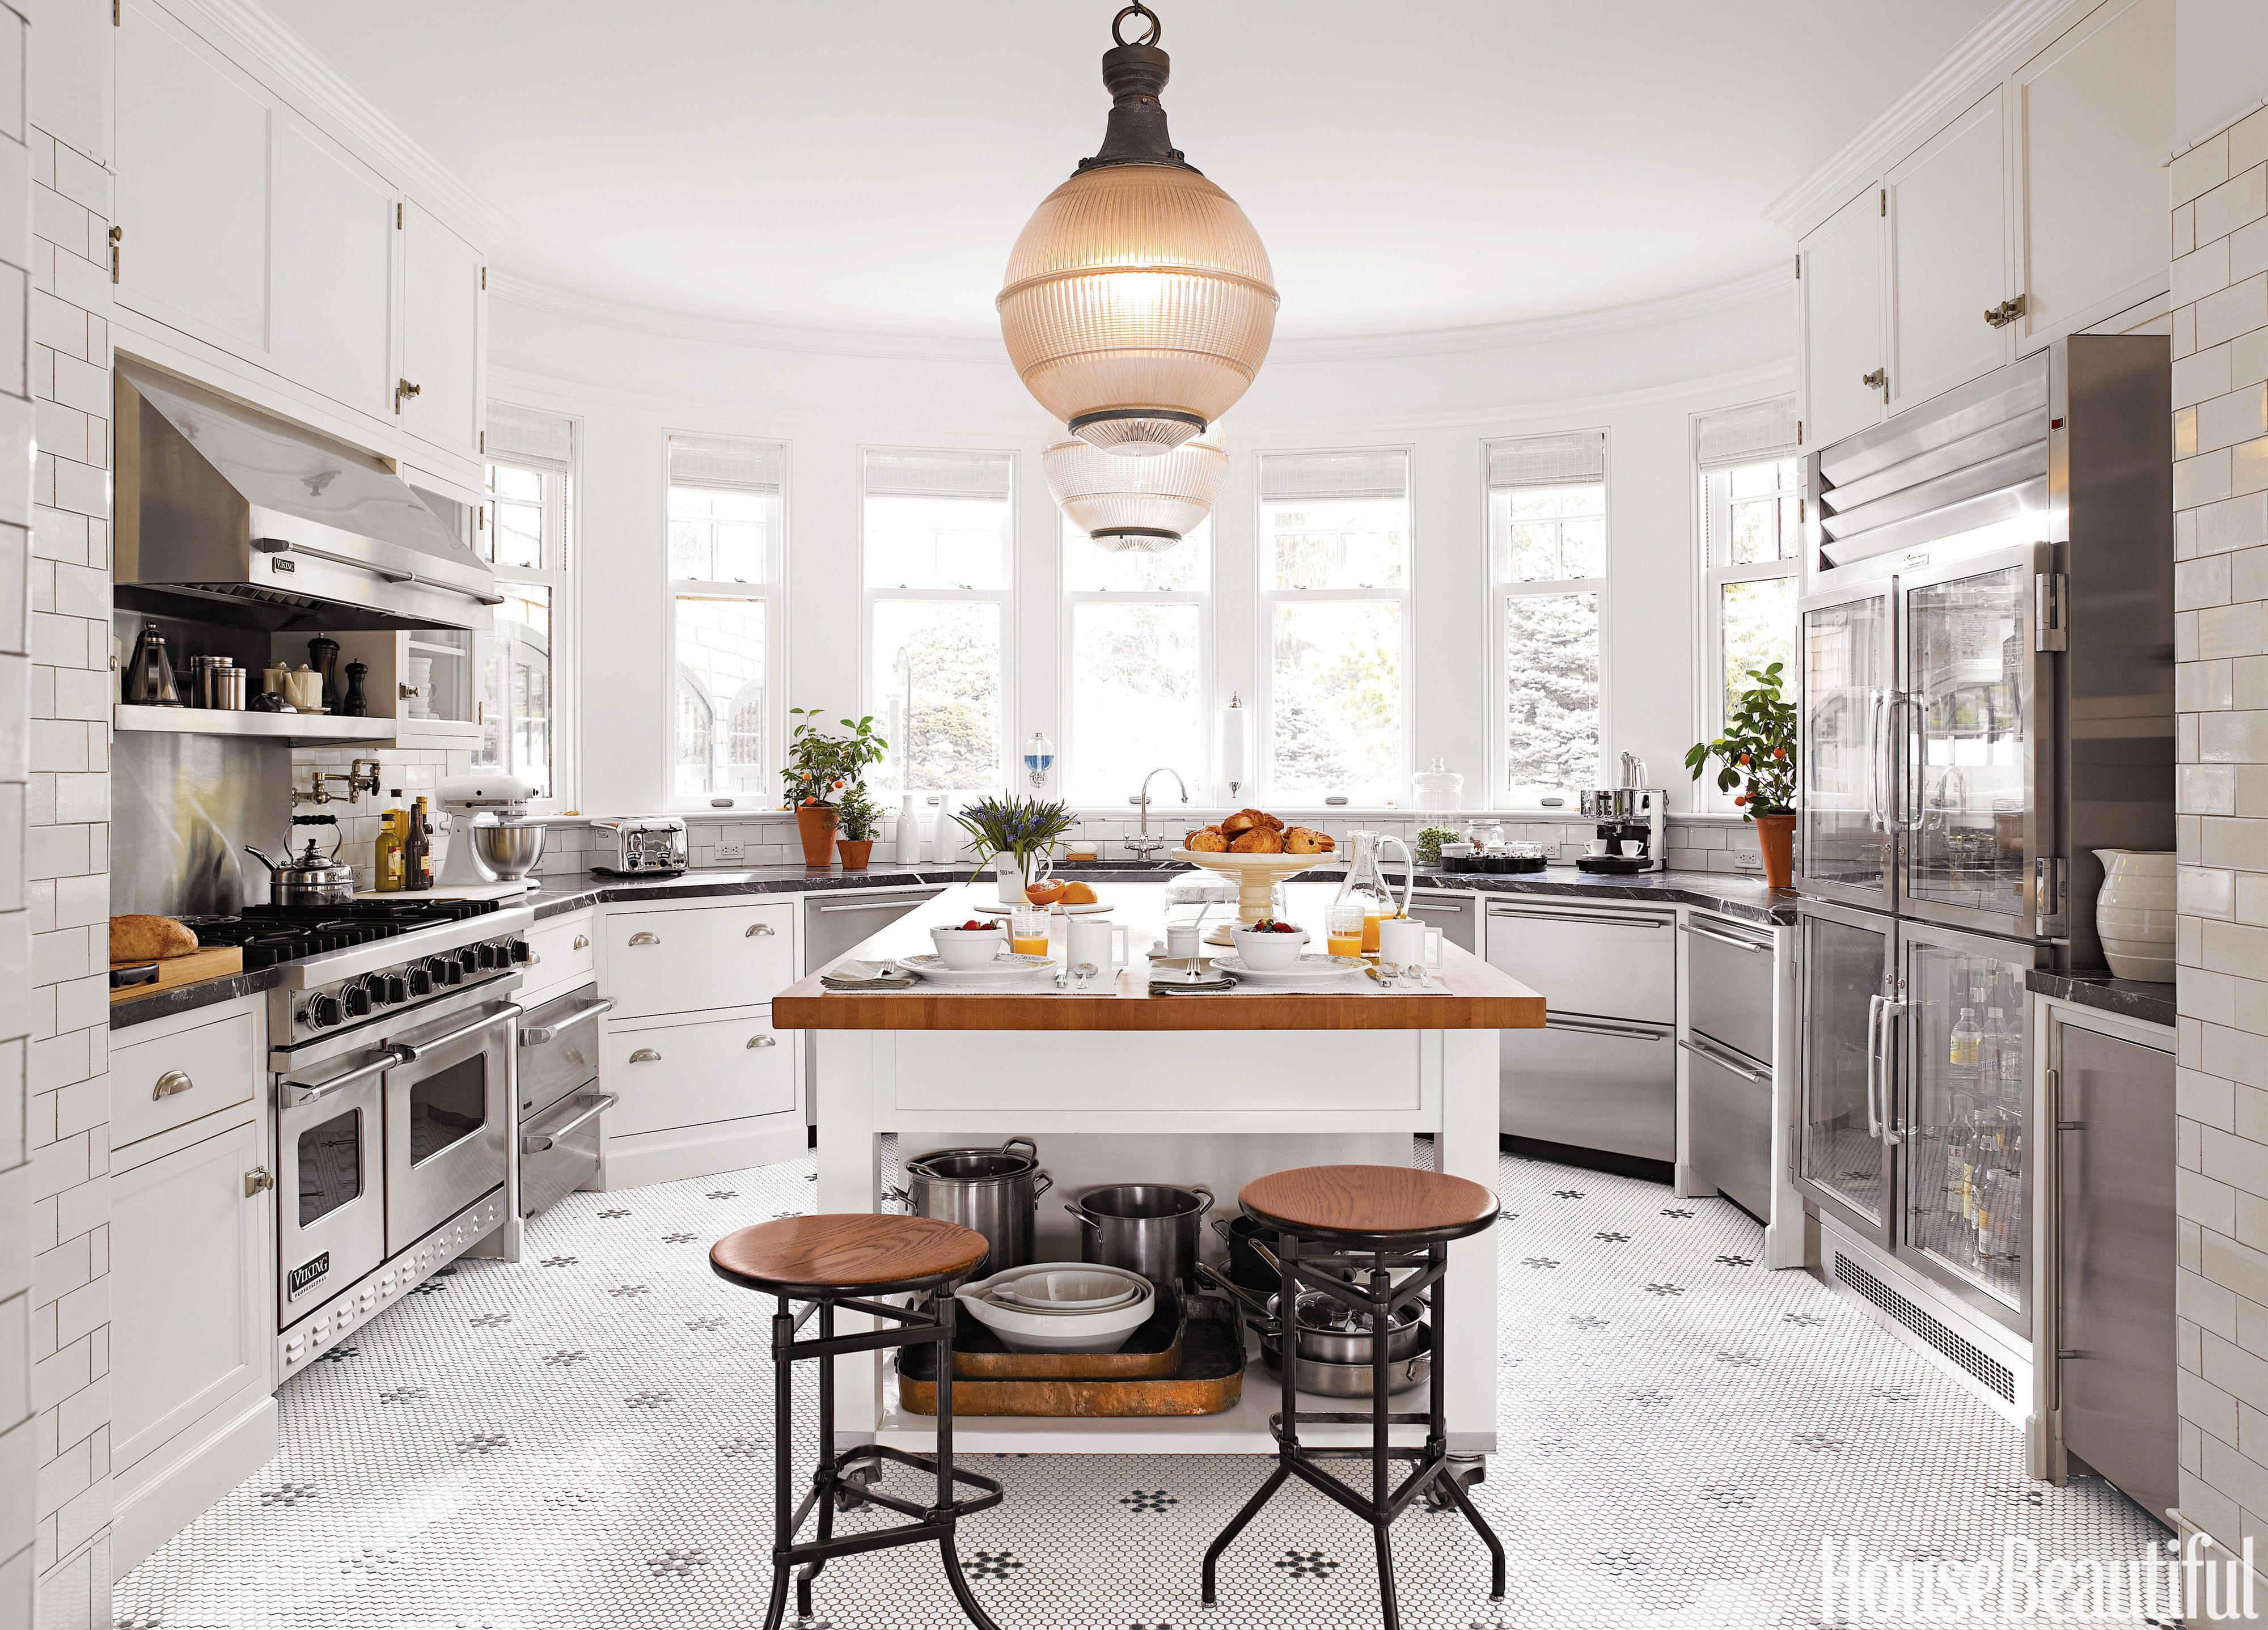 Kitchen of the Year - Modern Country Style - Joan Schindler